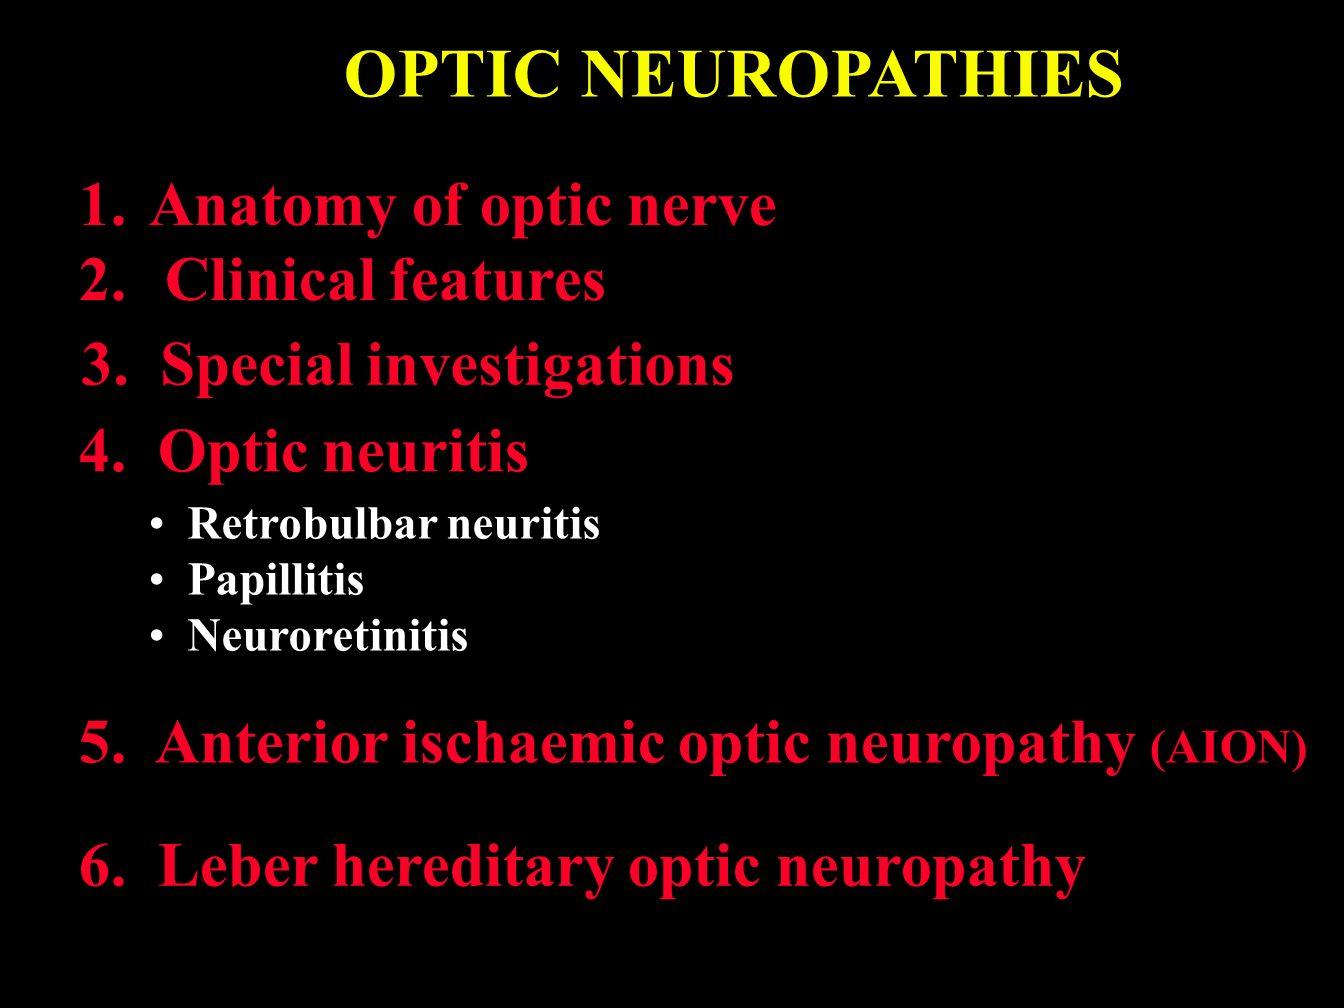 OPTIC NEUROPATHIES Anatomy of optic nerve Clinical features - ppt ...